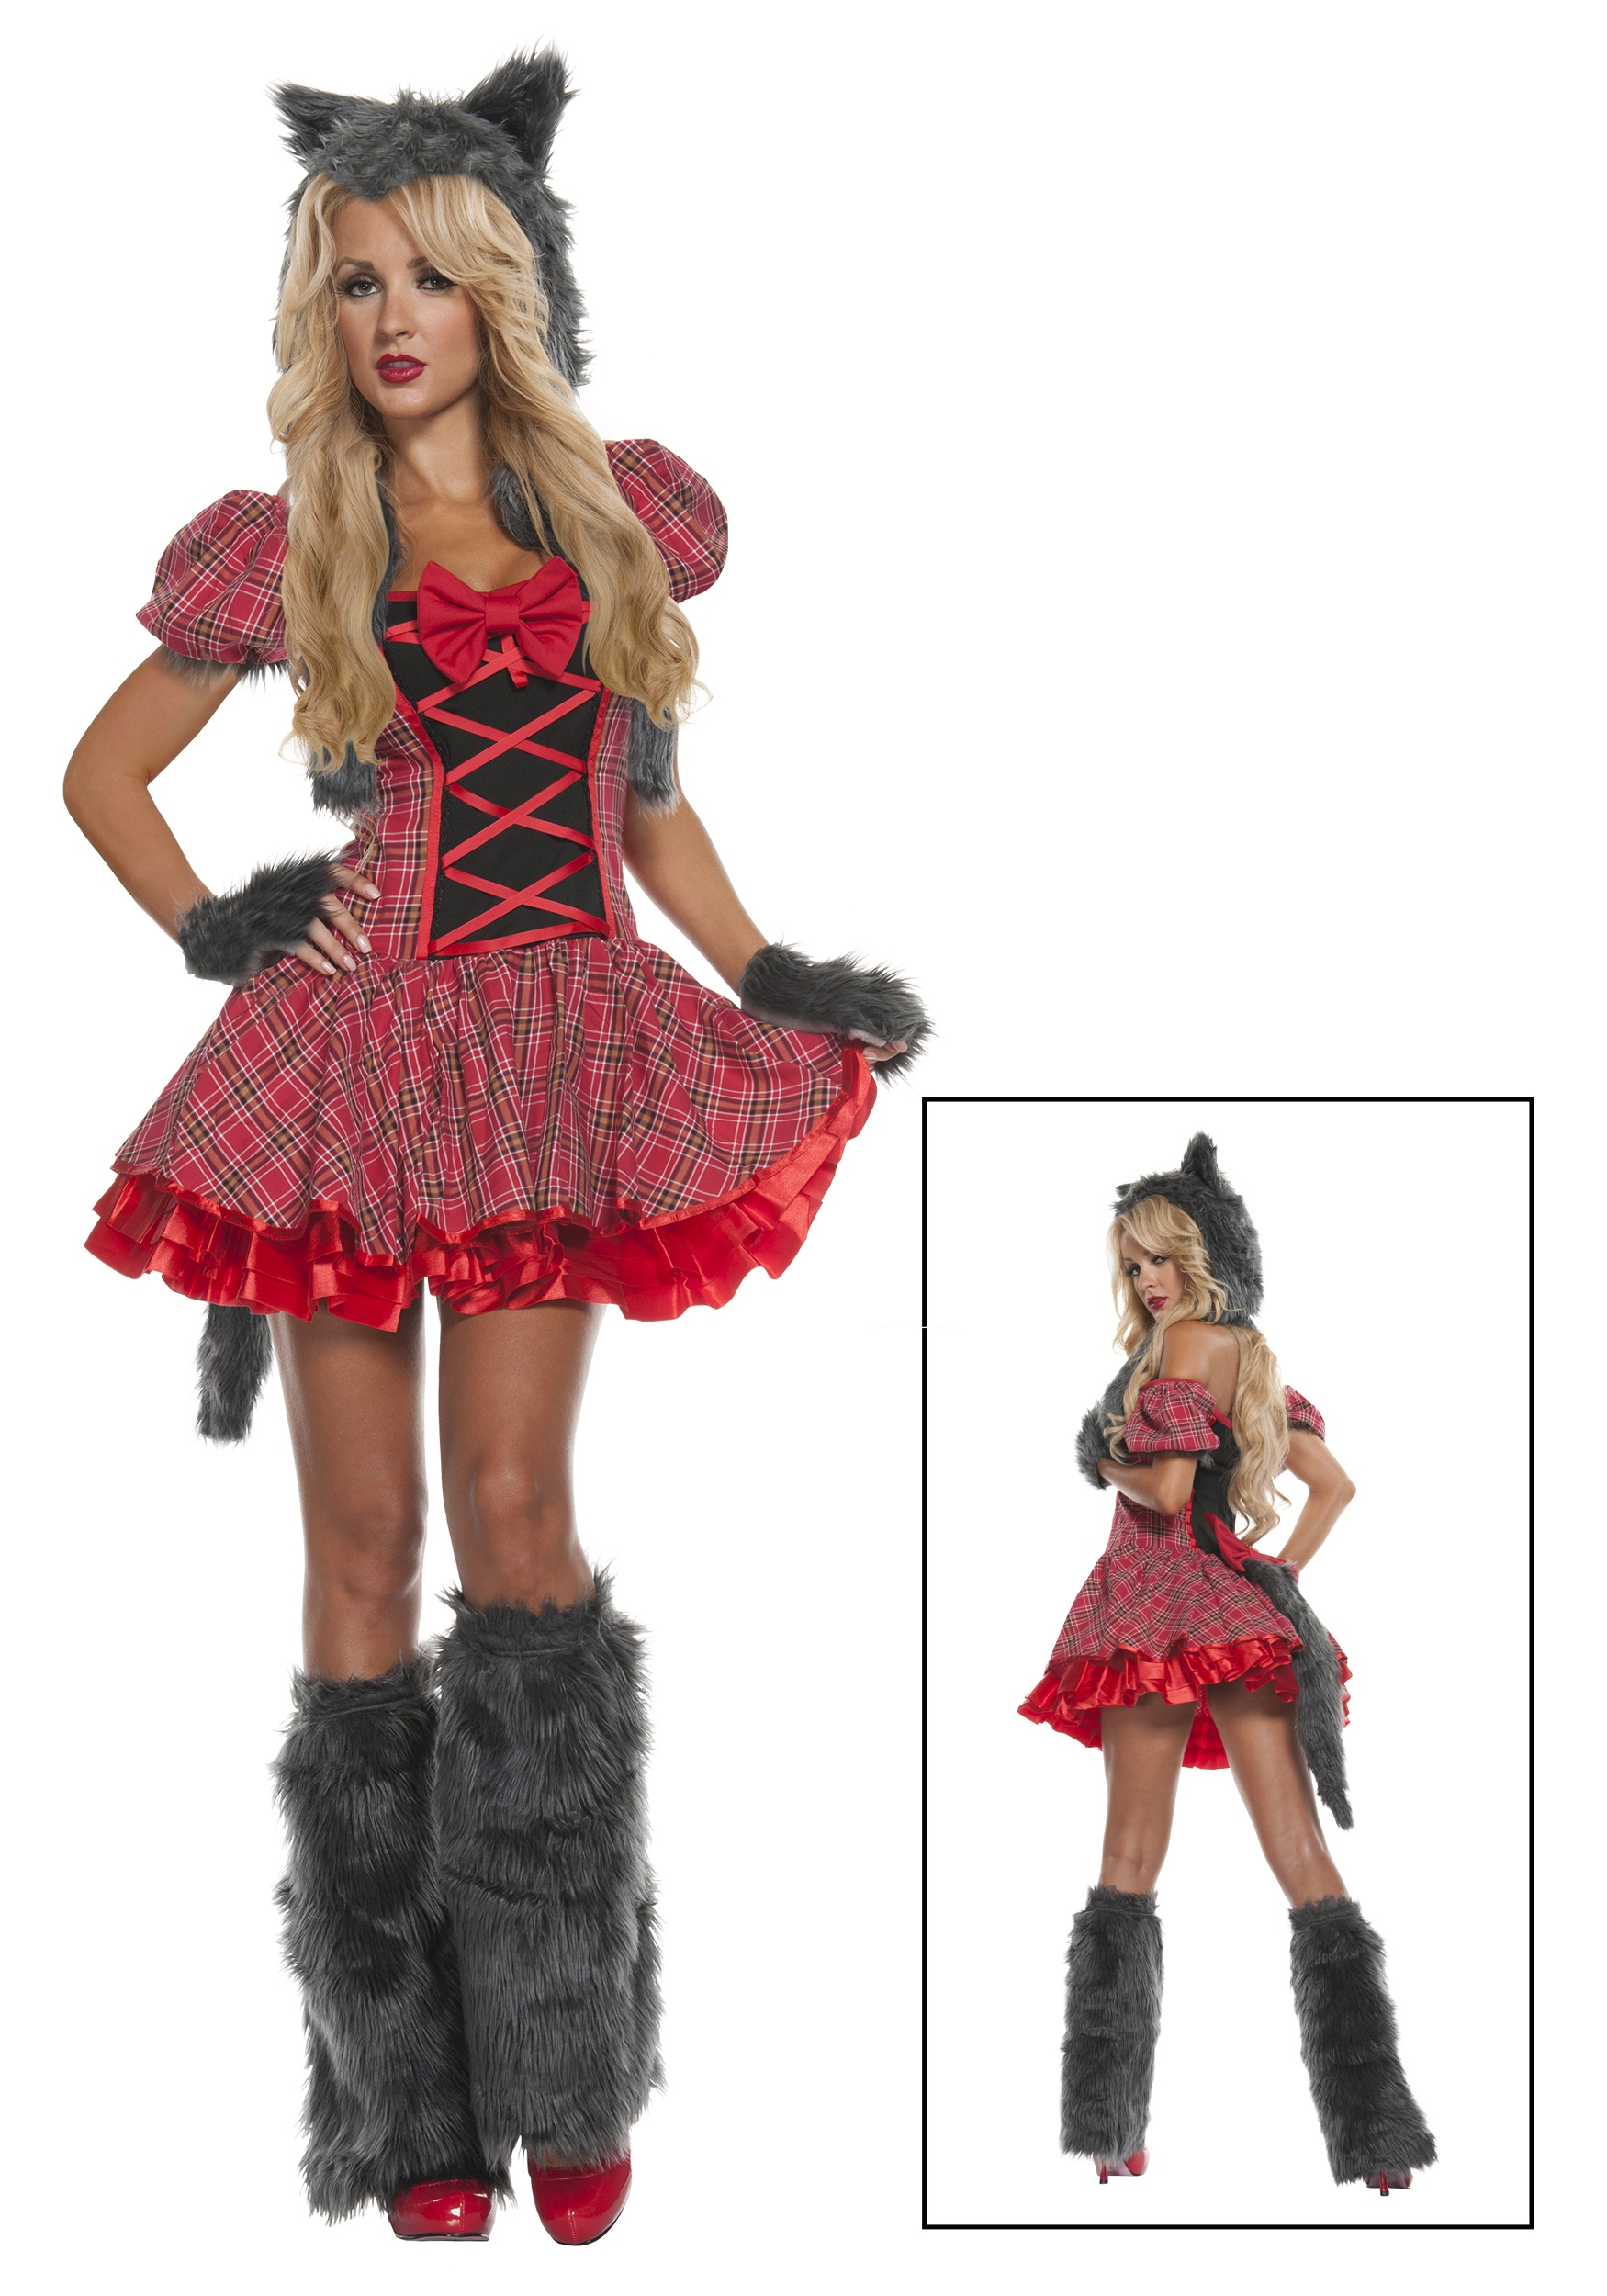 Exclusive Sexy Red Riding Wolf Costume  sc 1 st  Halloween Costumes & Exclusive Sexy Red Riding Wolf Costume - Halloween Costumes